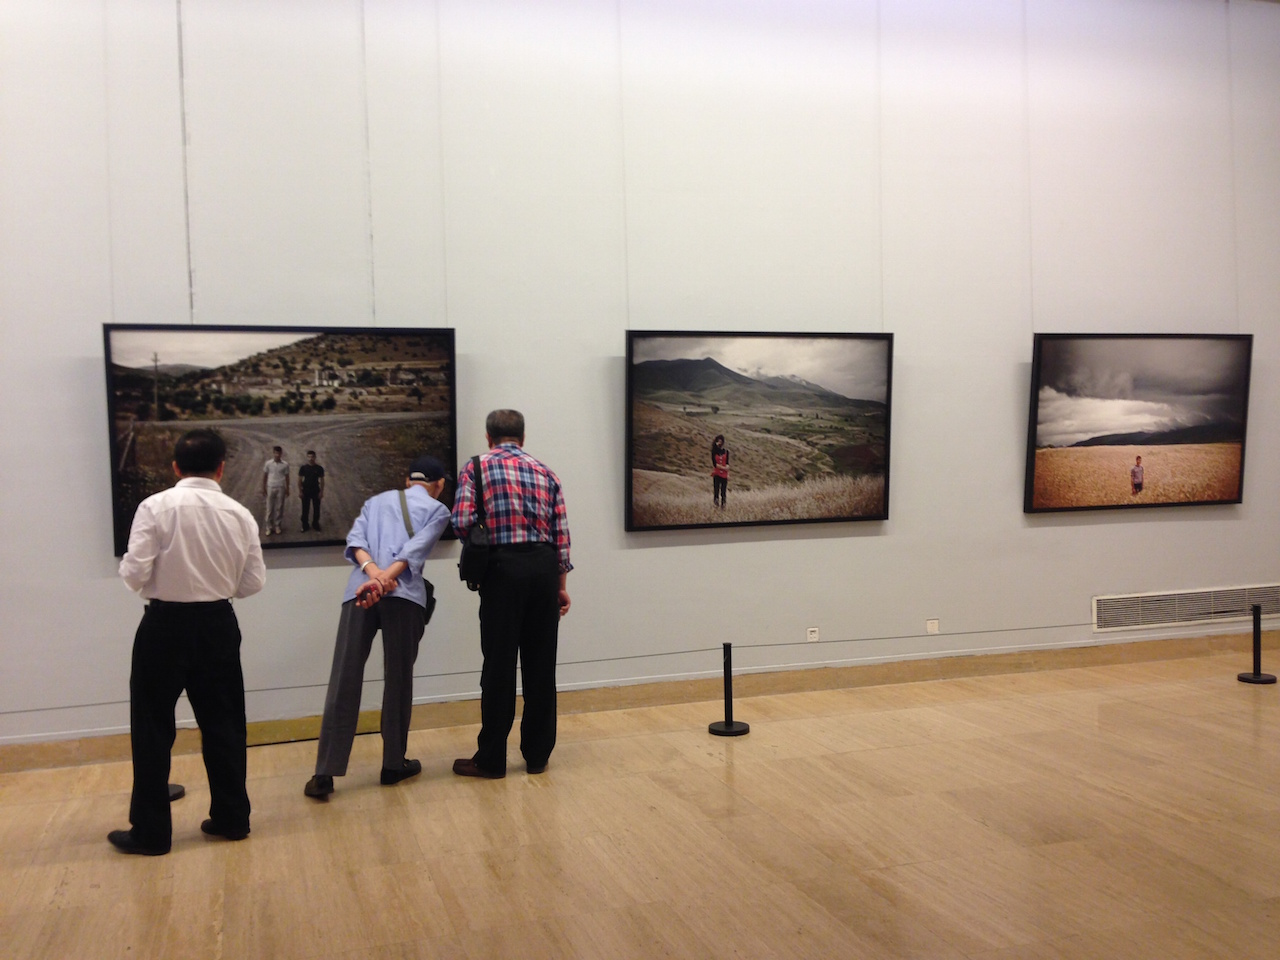 Visitors to the Armenian special exhibition examine photographs by Karen mirzoyan (photo by Anna Gargarian)